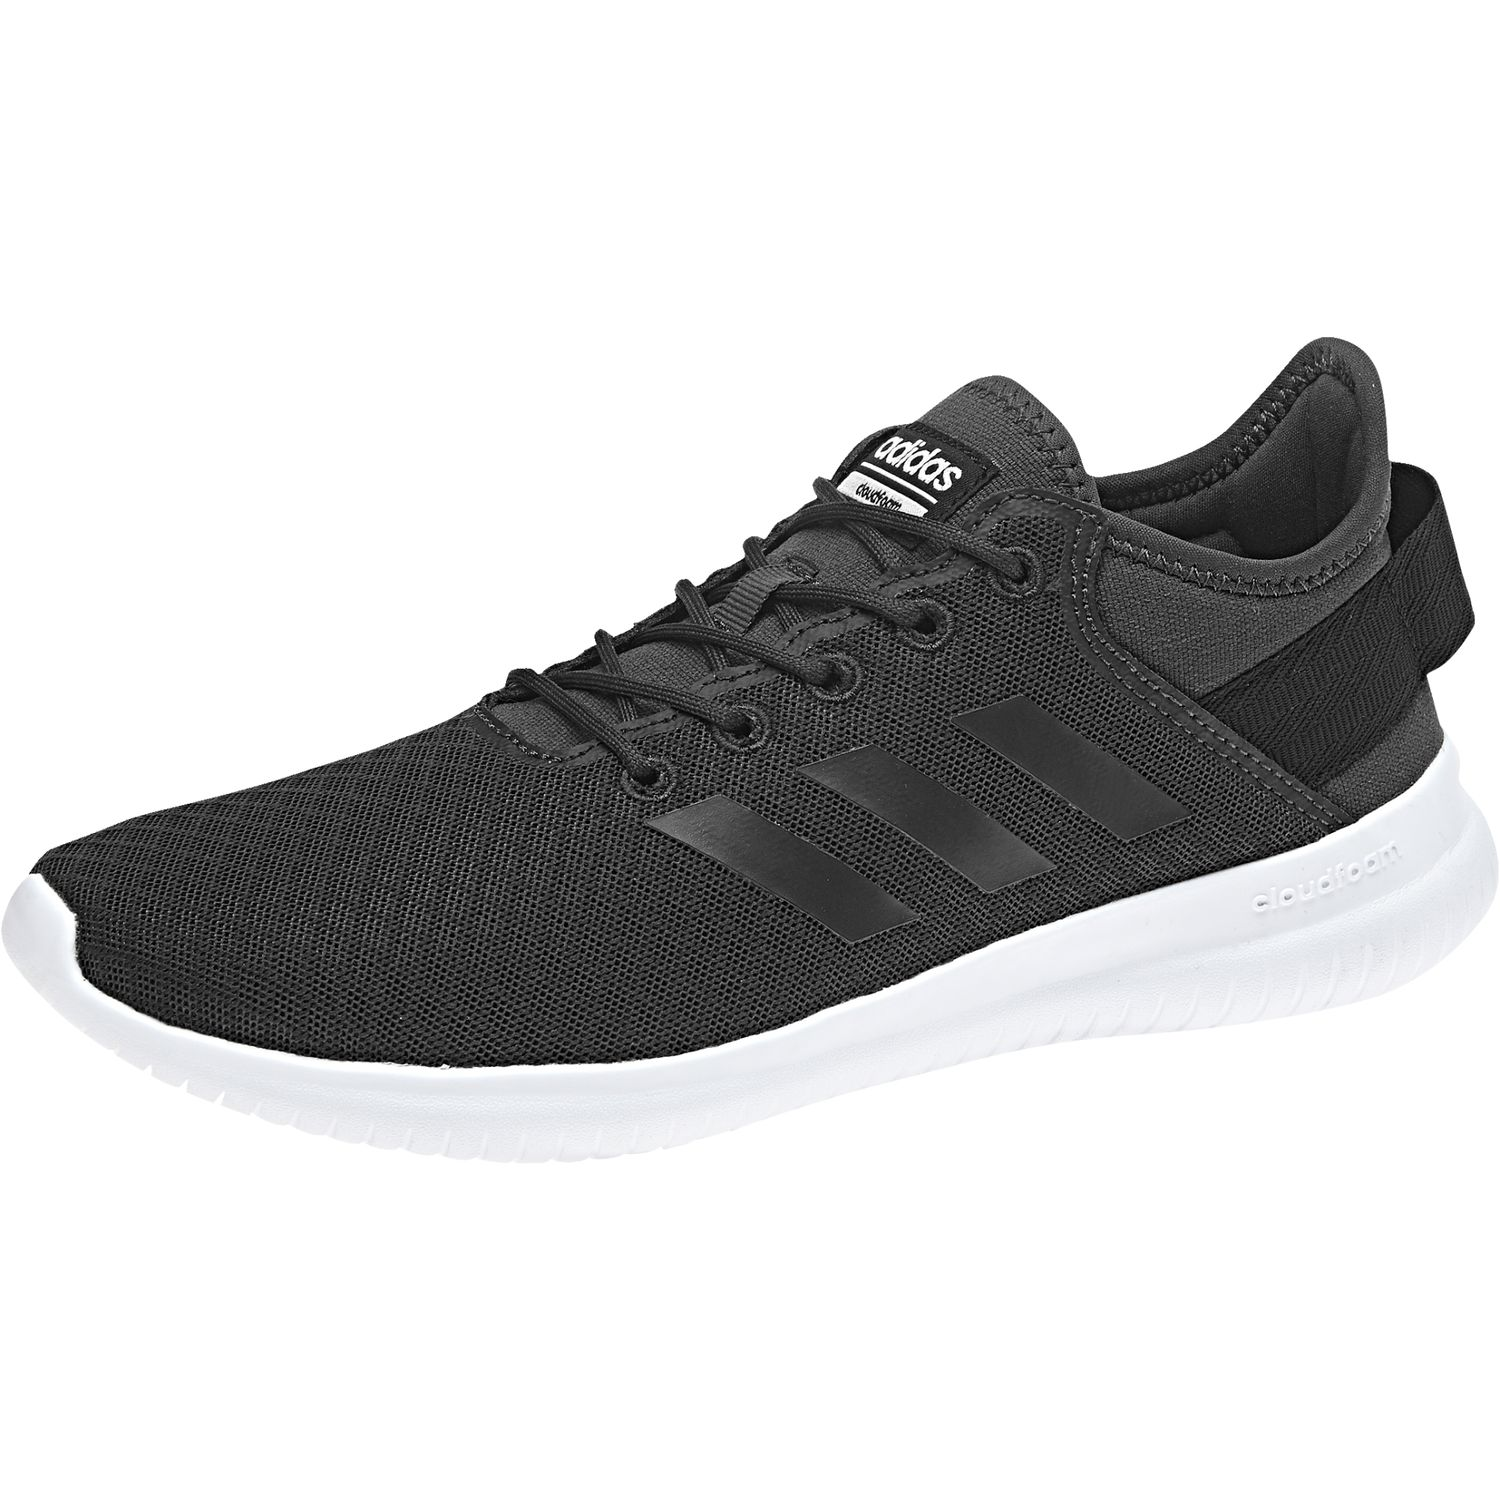 huge discount df0c6 8fa7a adidas Ladies Cloudfoam CF QTFLEX W Sneakers Shoes running shoes DA9449  carbon